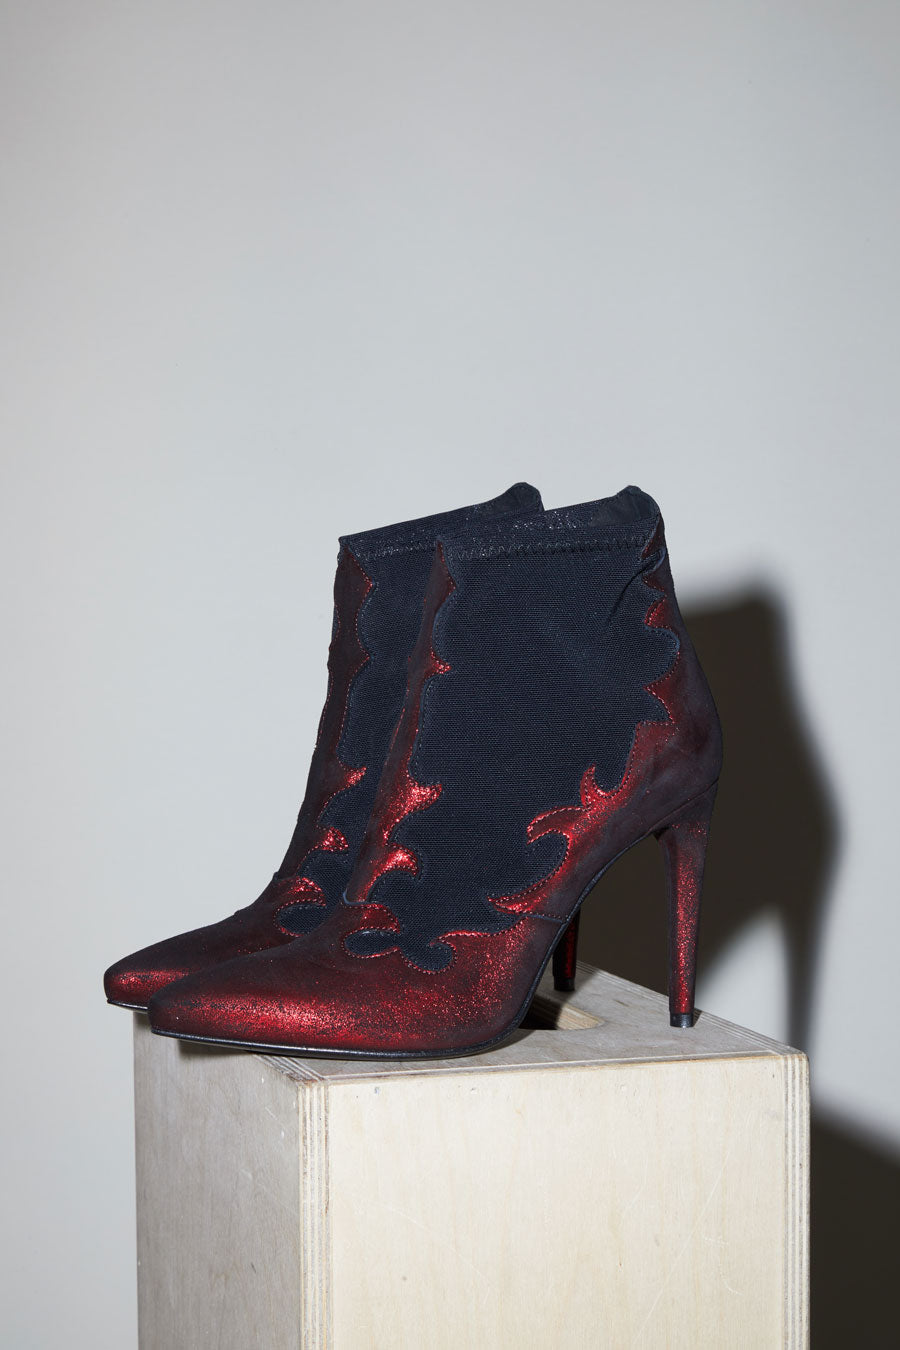 No.6 Flame Boot in Marlboro / Nero